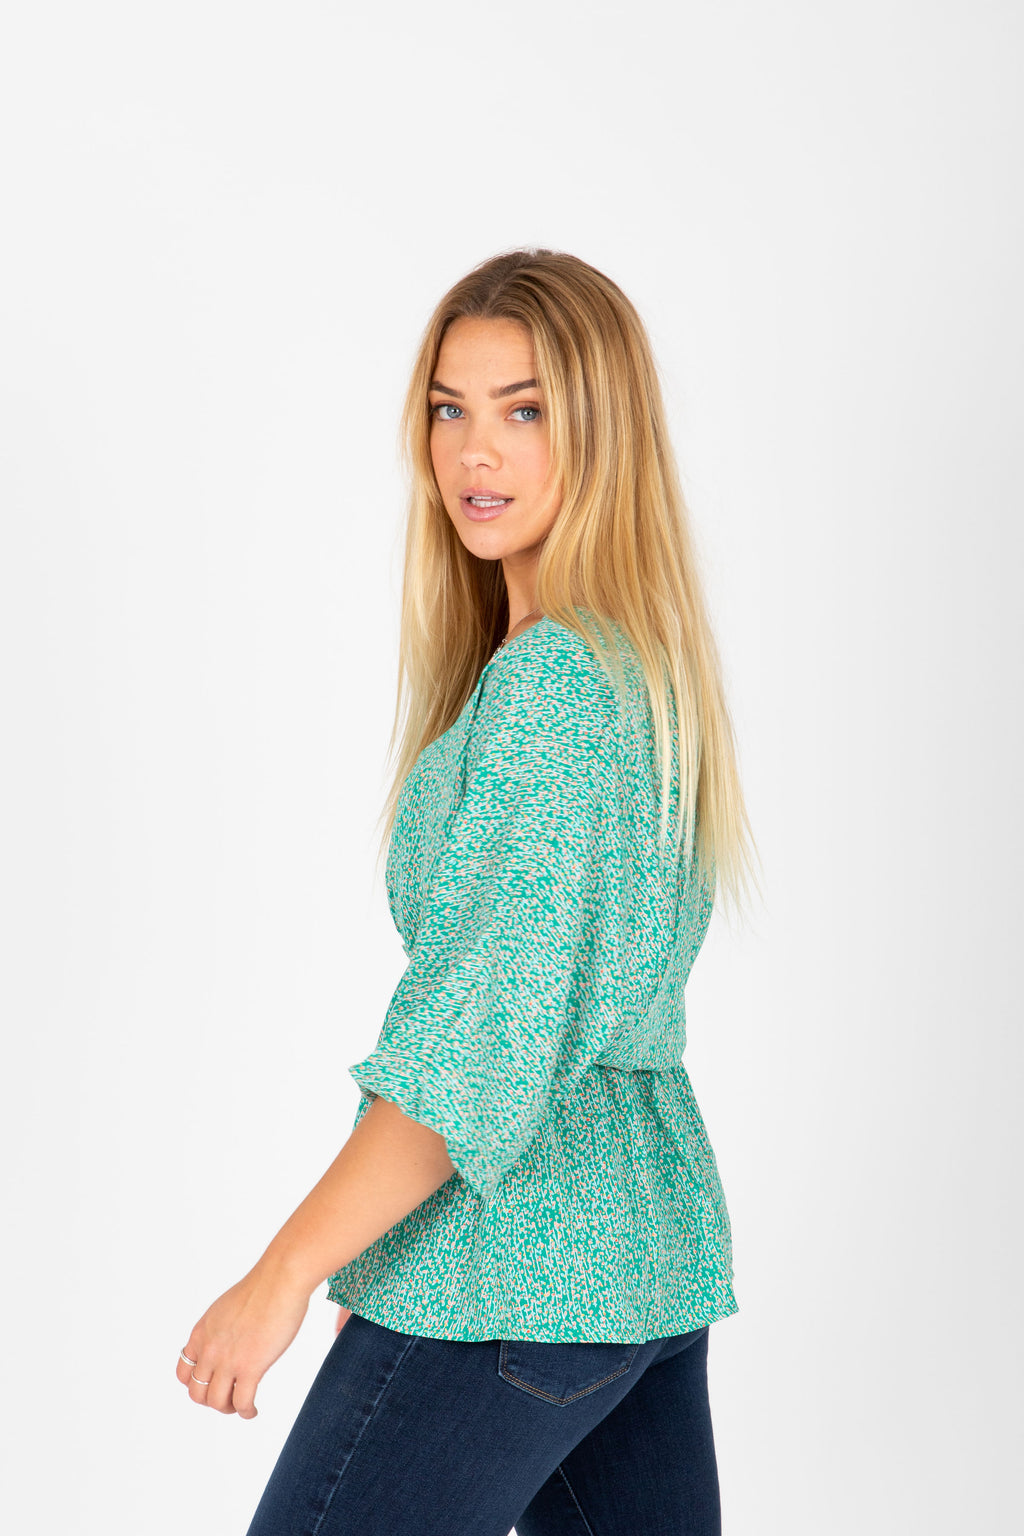 The Meadow Patterned Peplum Blouse in Green, studio shoot; side view